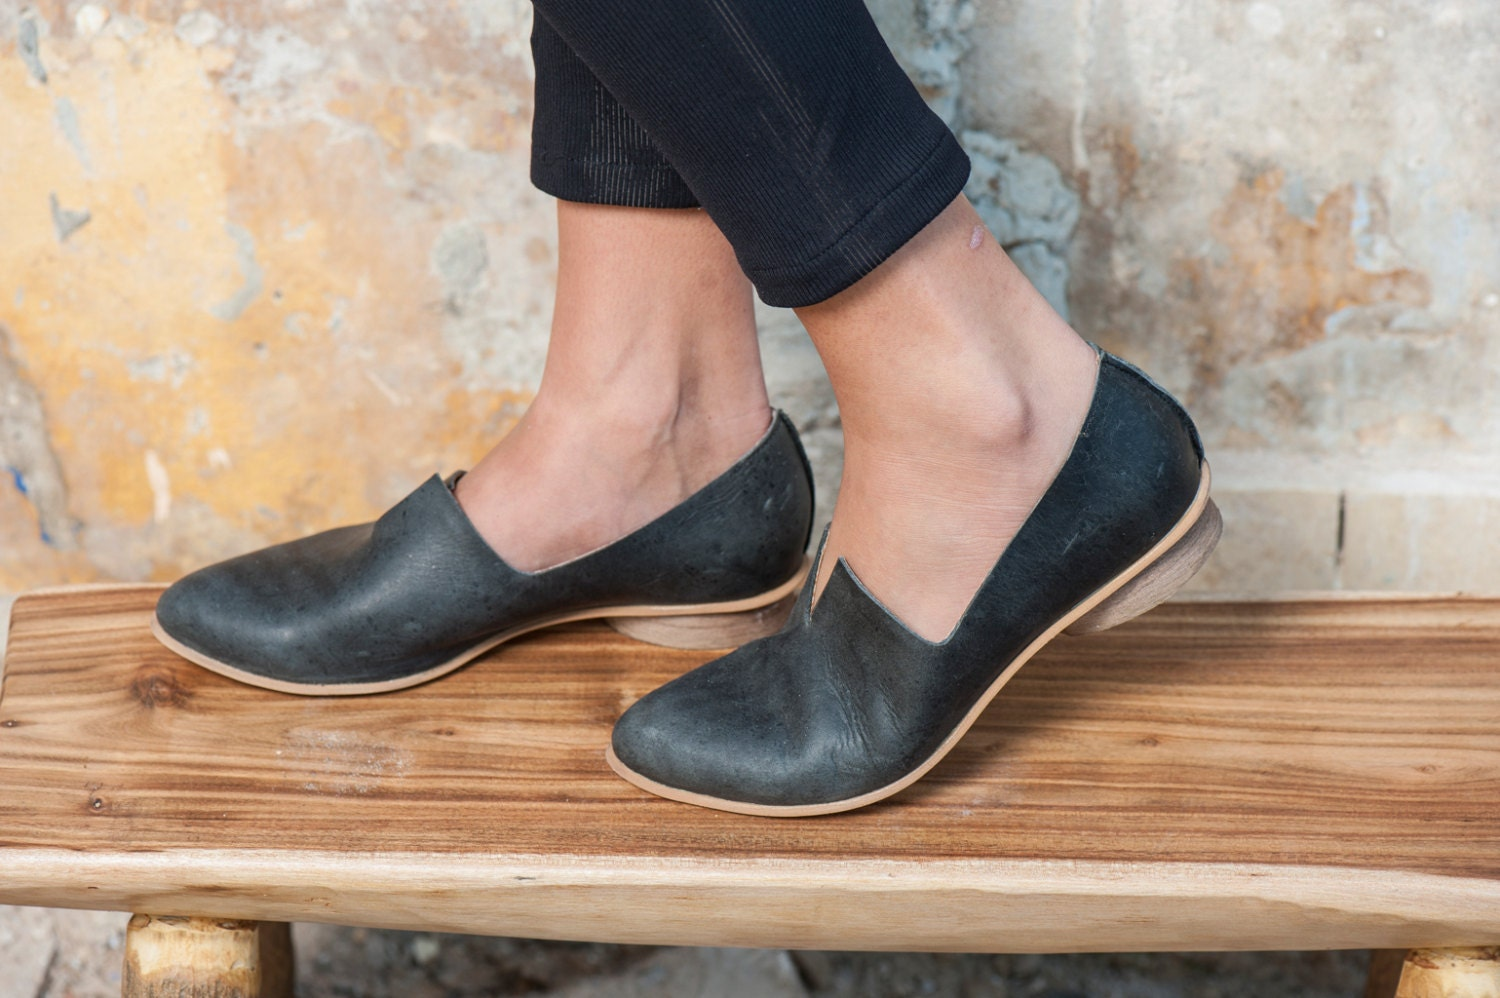 Comfortable Nude Patent Leather Shoes